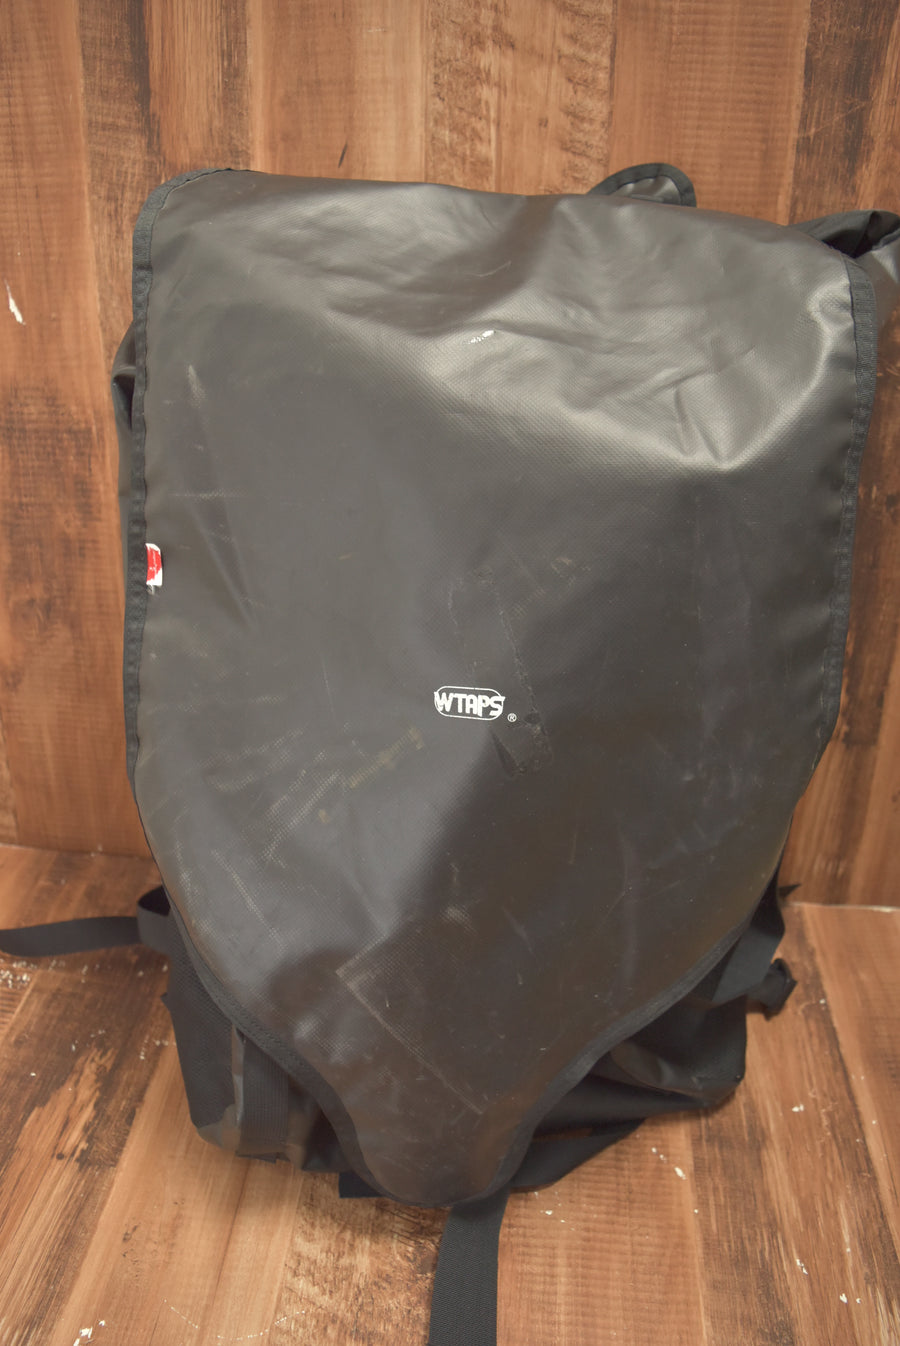 WTAPS / × Porter Military Big Backpack / 7685 - 0510 124.5